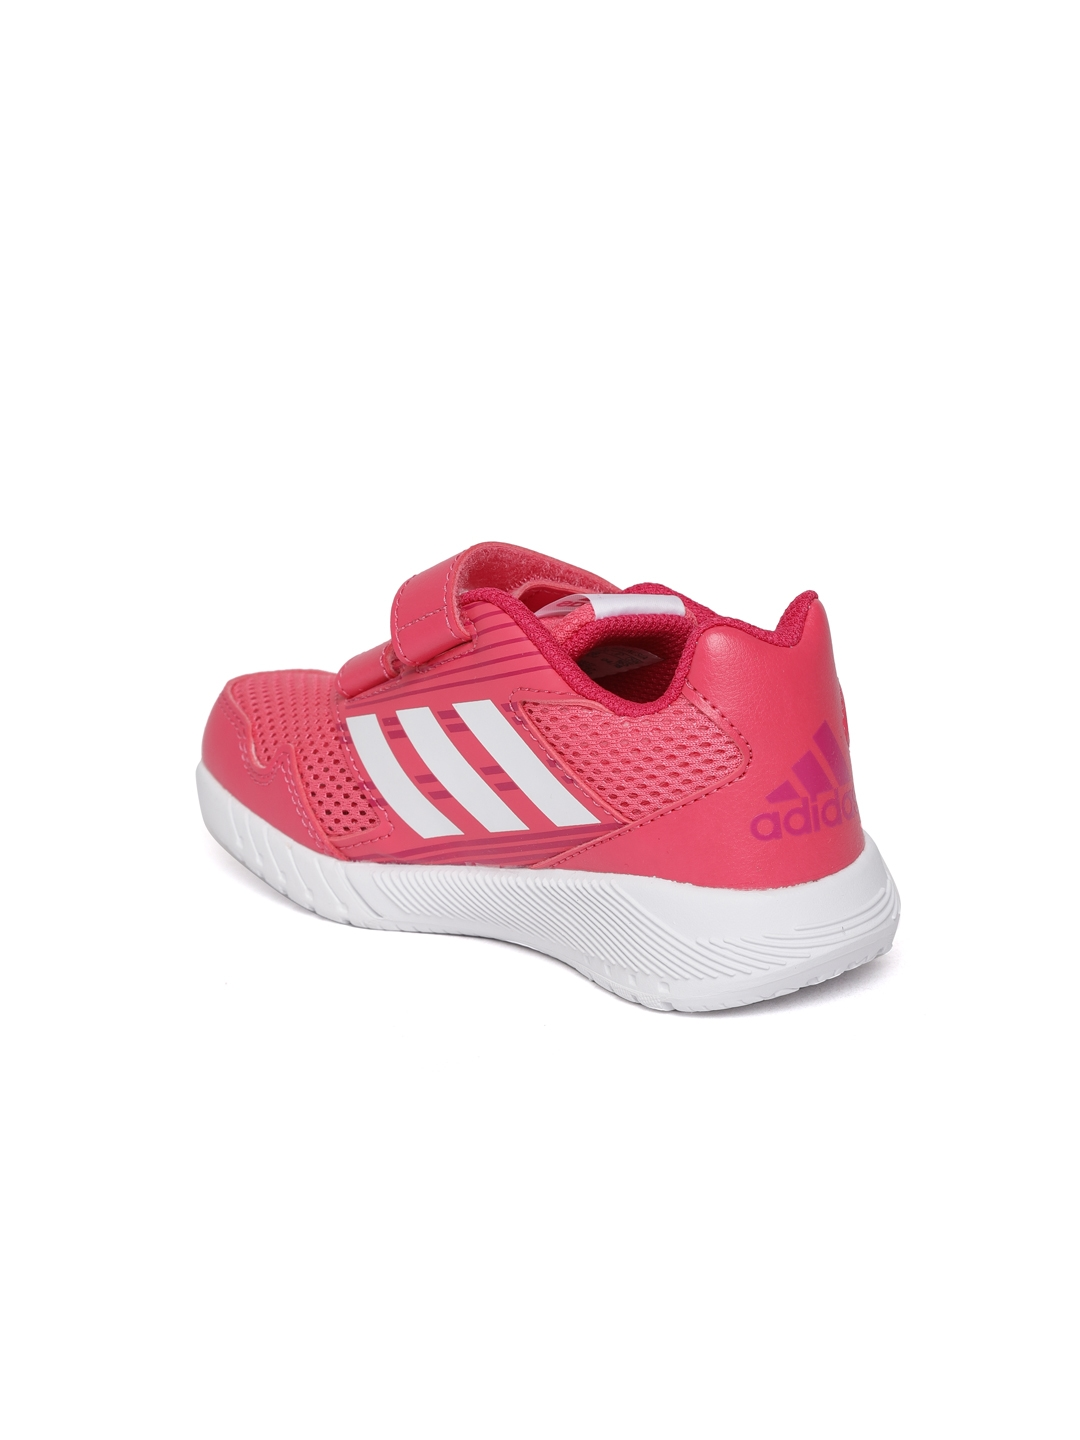 c1be10a96abd8c Buy ADIDAS Kids Pink ALTARUN CF Running Shoes - Sports Shoes for ...